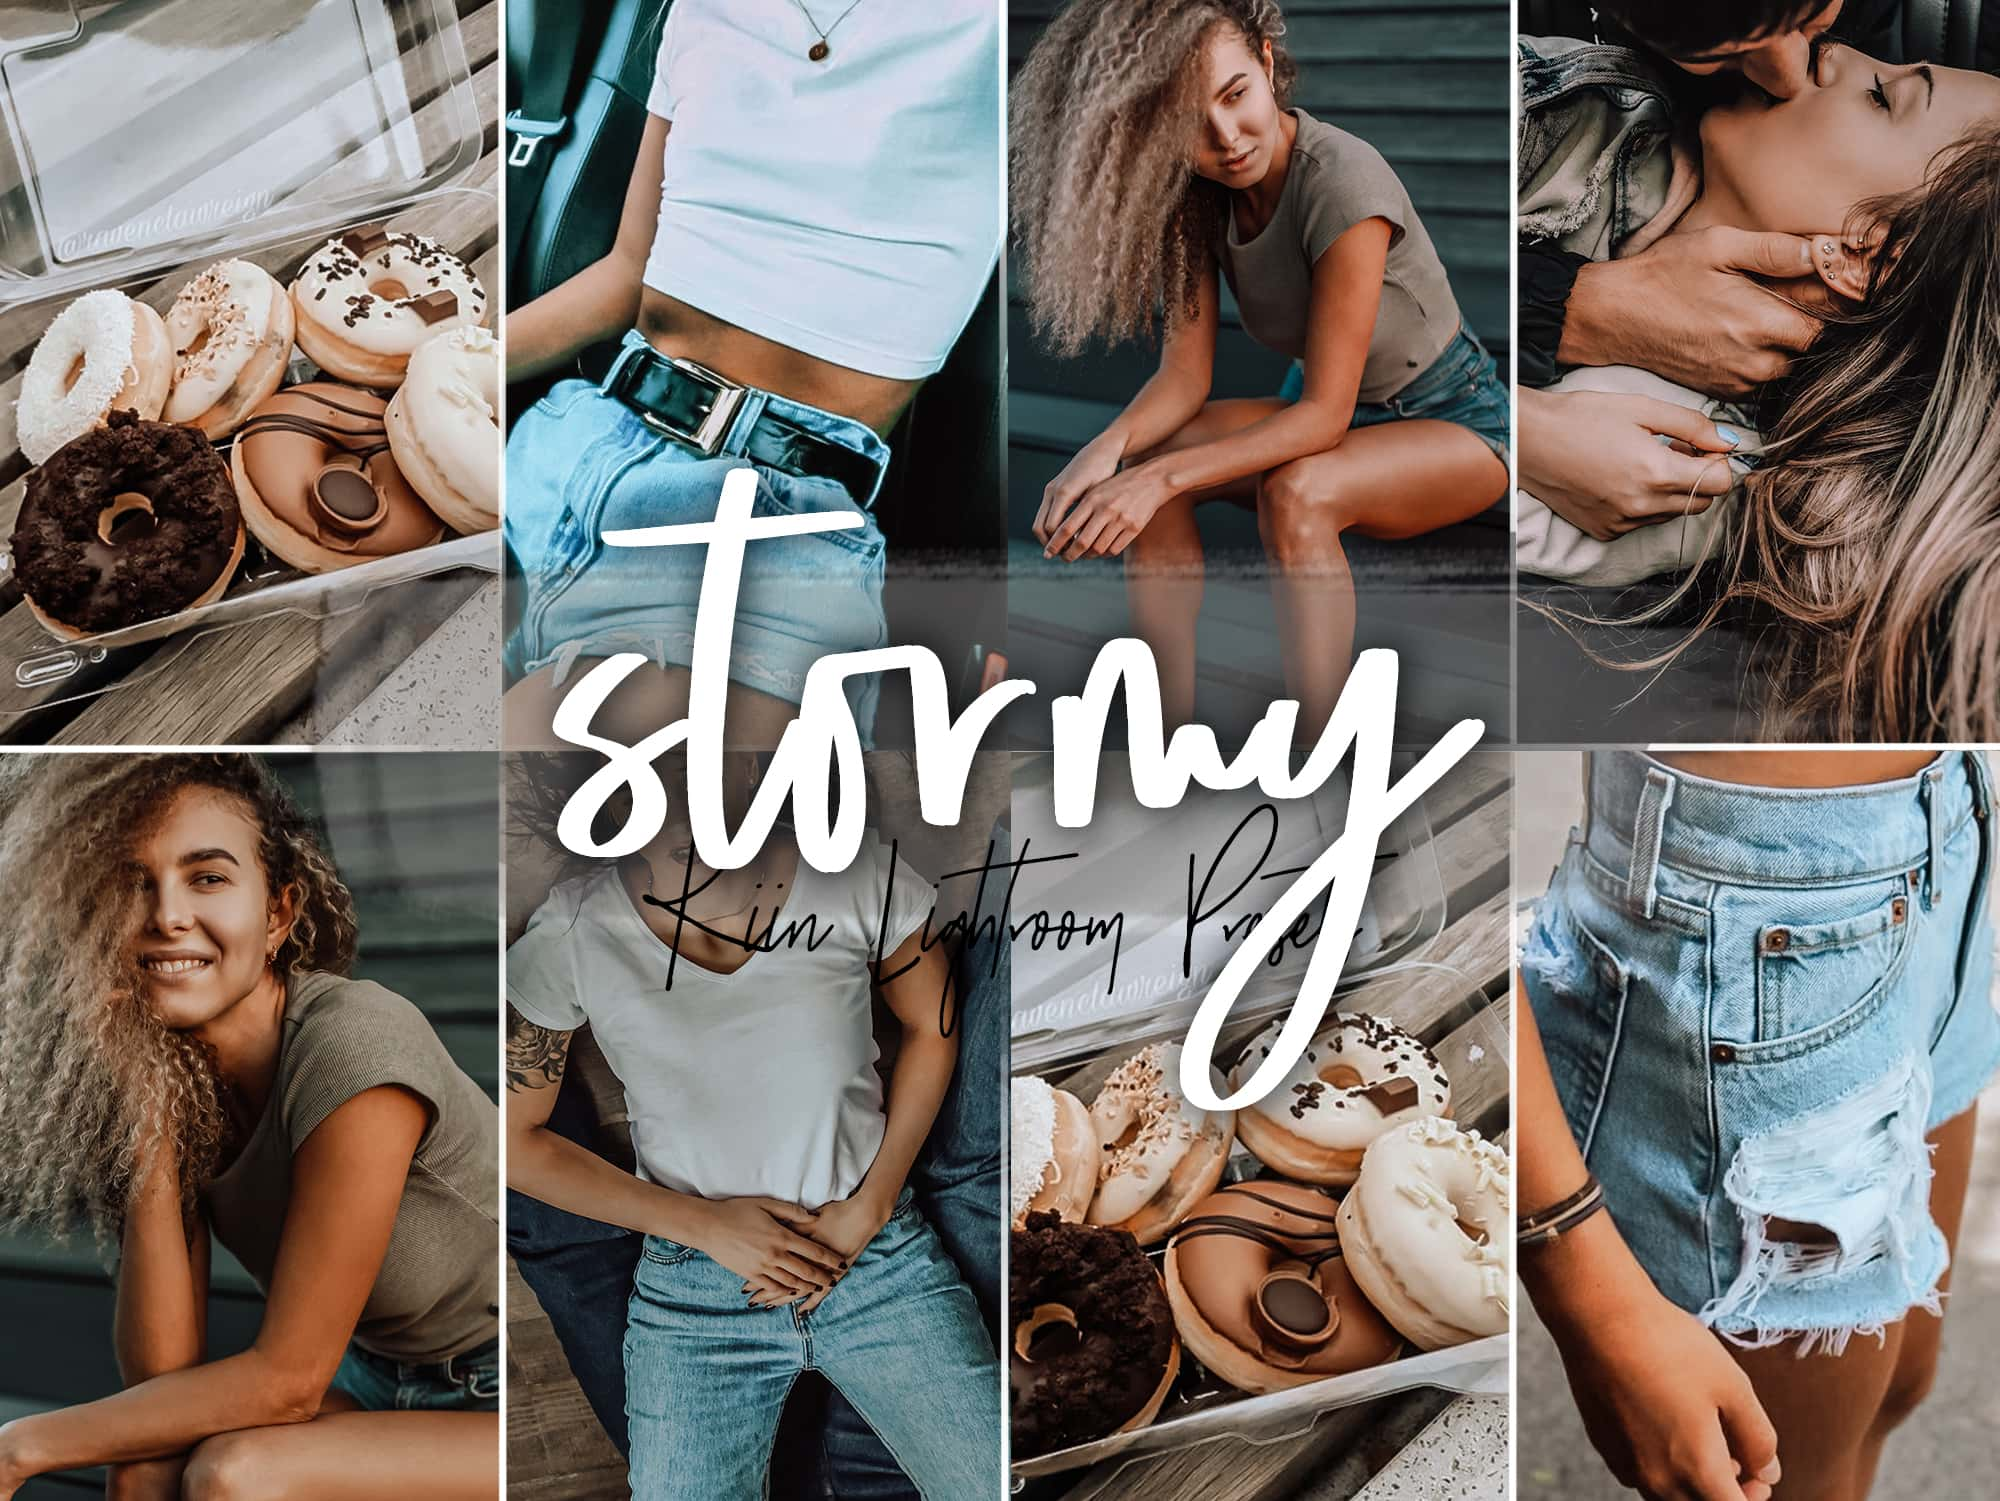 Modern Urban Stormy presets with a bold and moody aesthetic by KIIN Presets